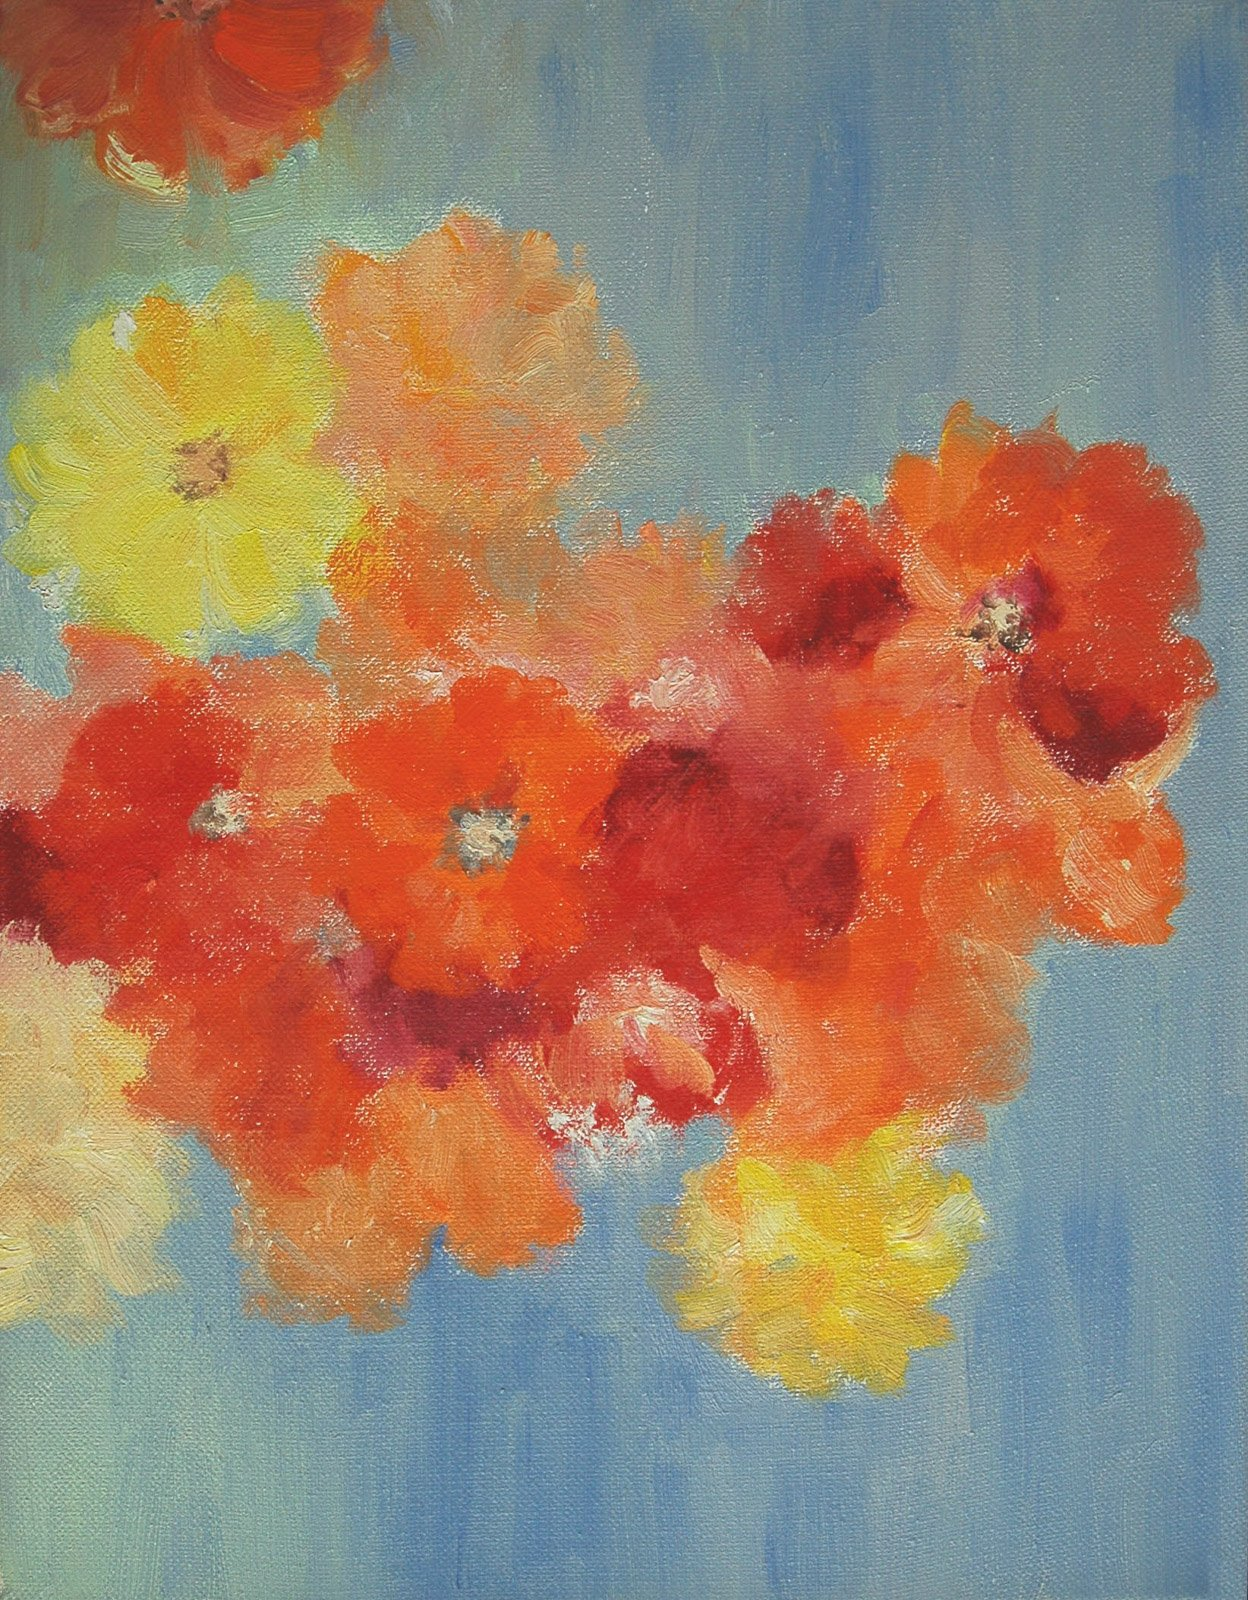 POPPIES, oil on canvas, 14 x 10 inches, copyright ©2010